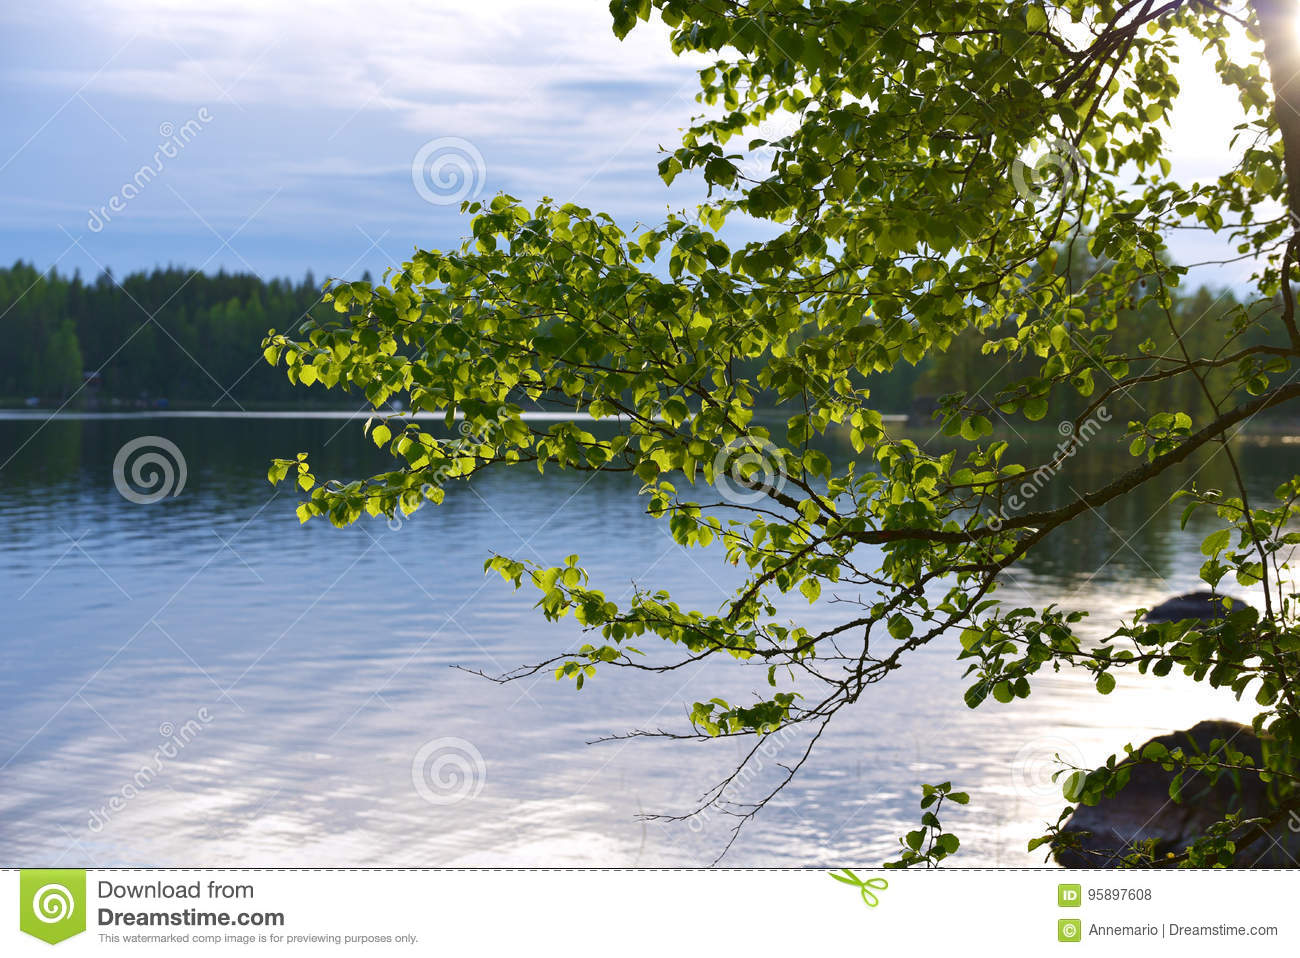 Download Finland stock photo. Image of camping, pine, green, leaf - 95897608